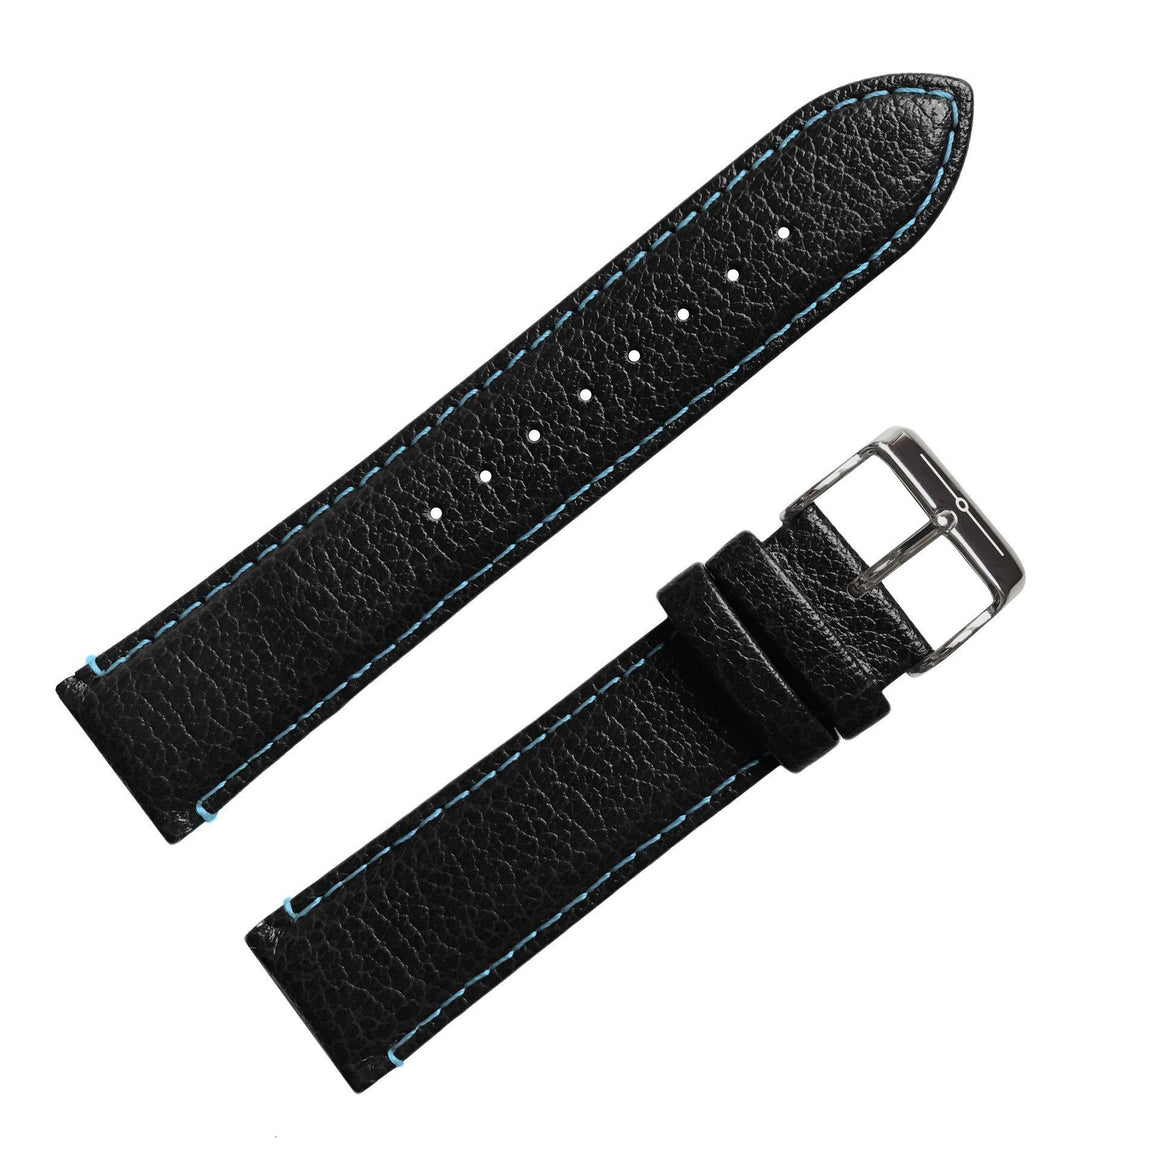 Strap - No.29 Black And Blue Strap